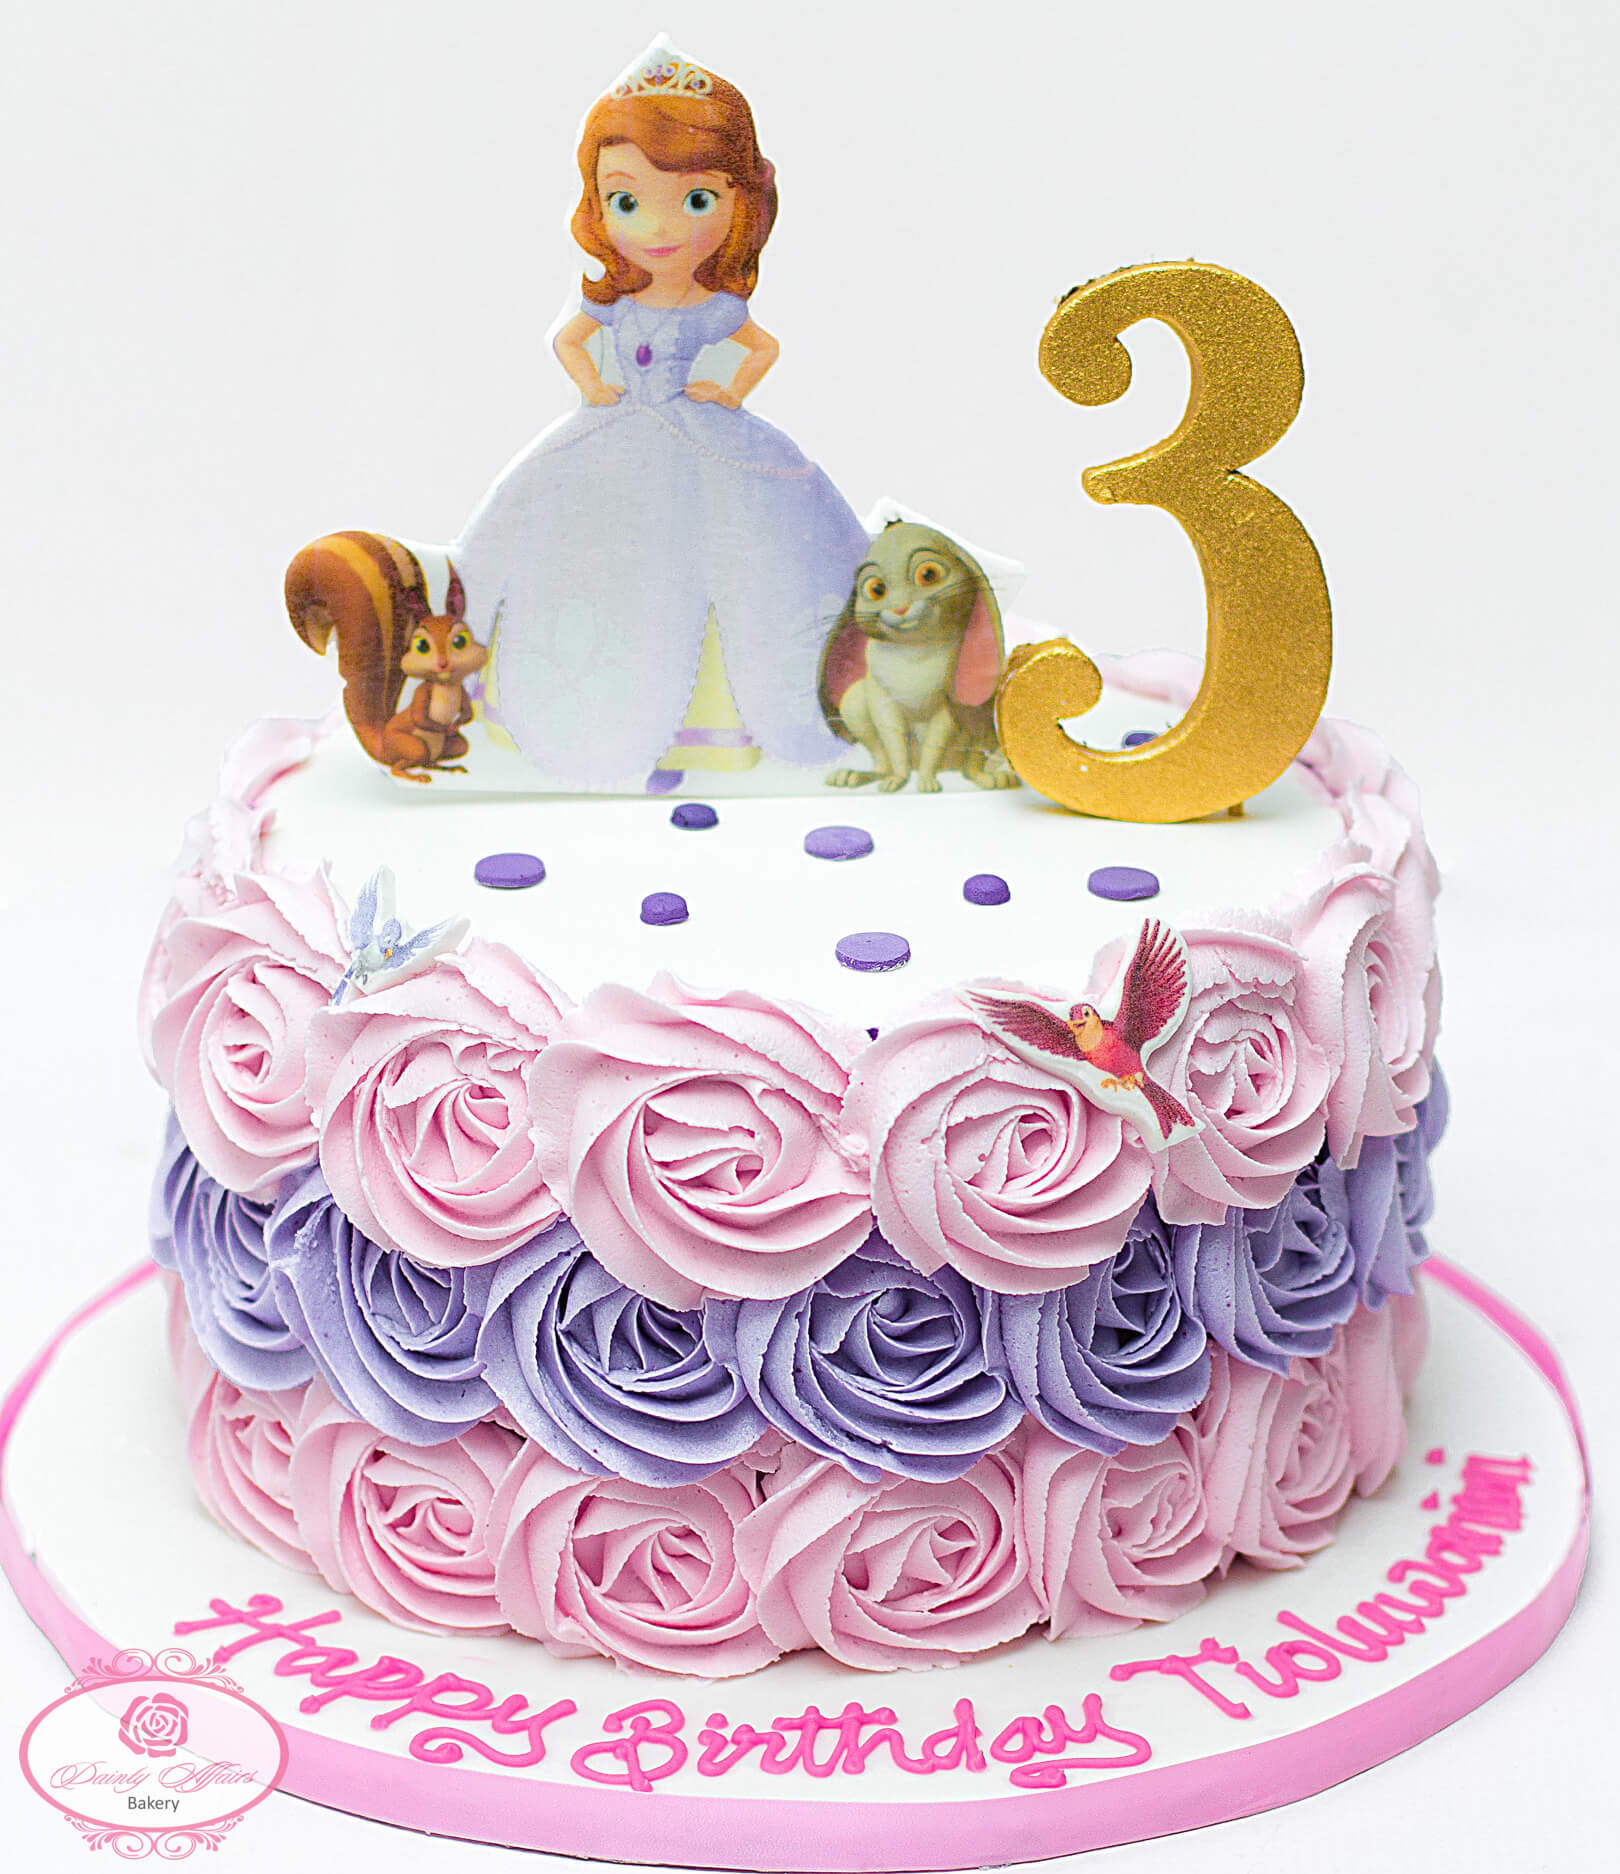 Rosette Butter Cream Character Cake Dainty Affairs Bakery Cakes